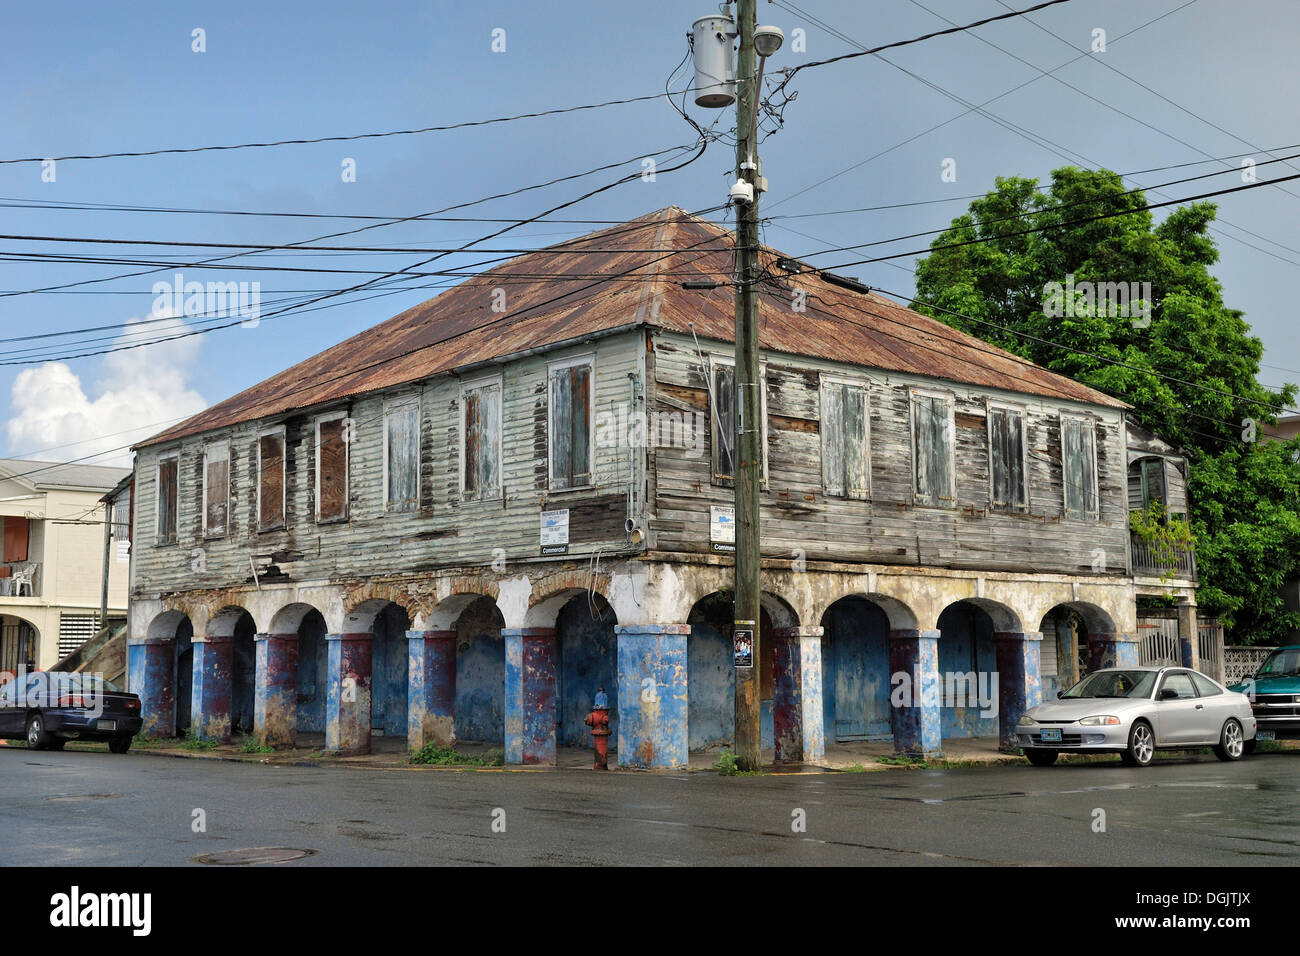 Attractive Old House With Arcades, In Need Of Renovation, Frederiksted, St. Croix  Island, US Virgin Islands, USA